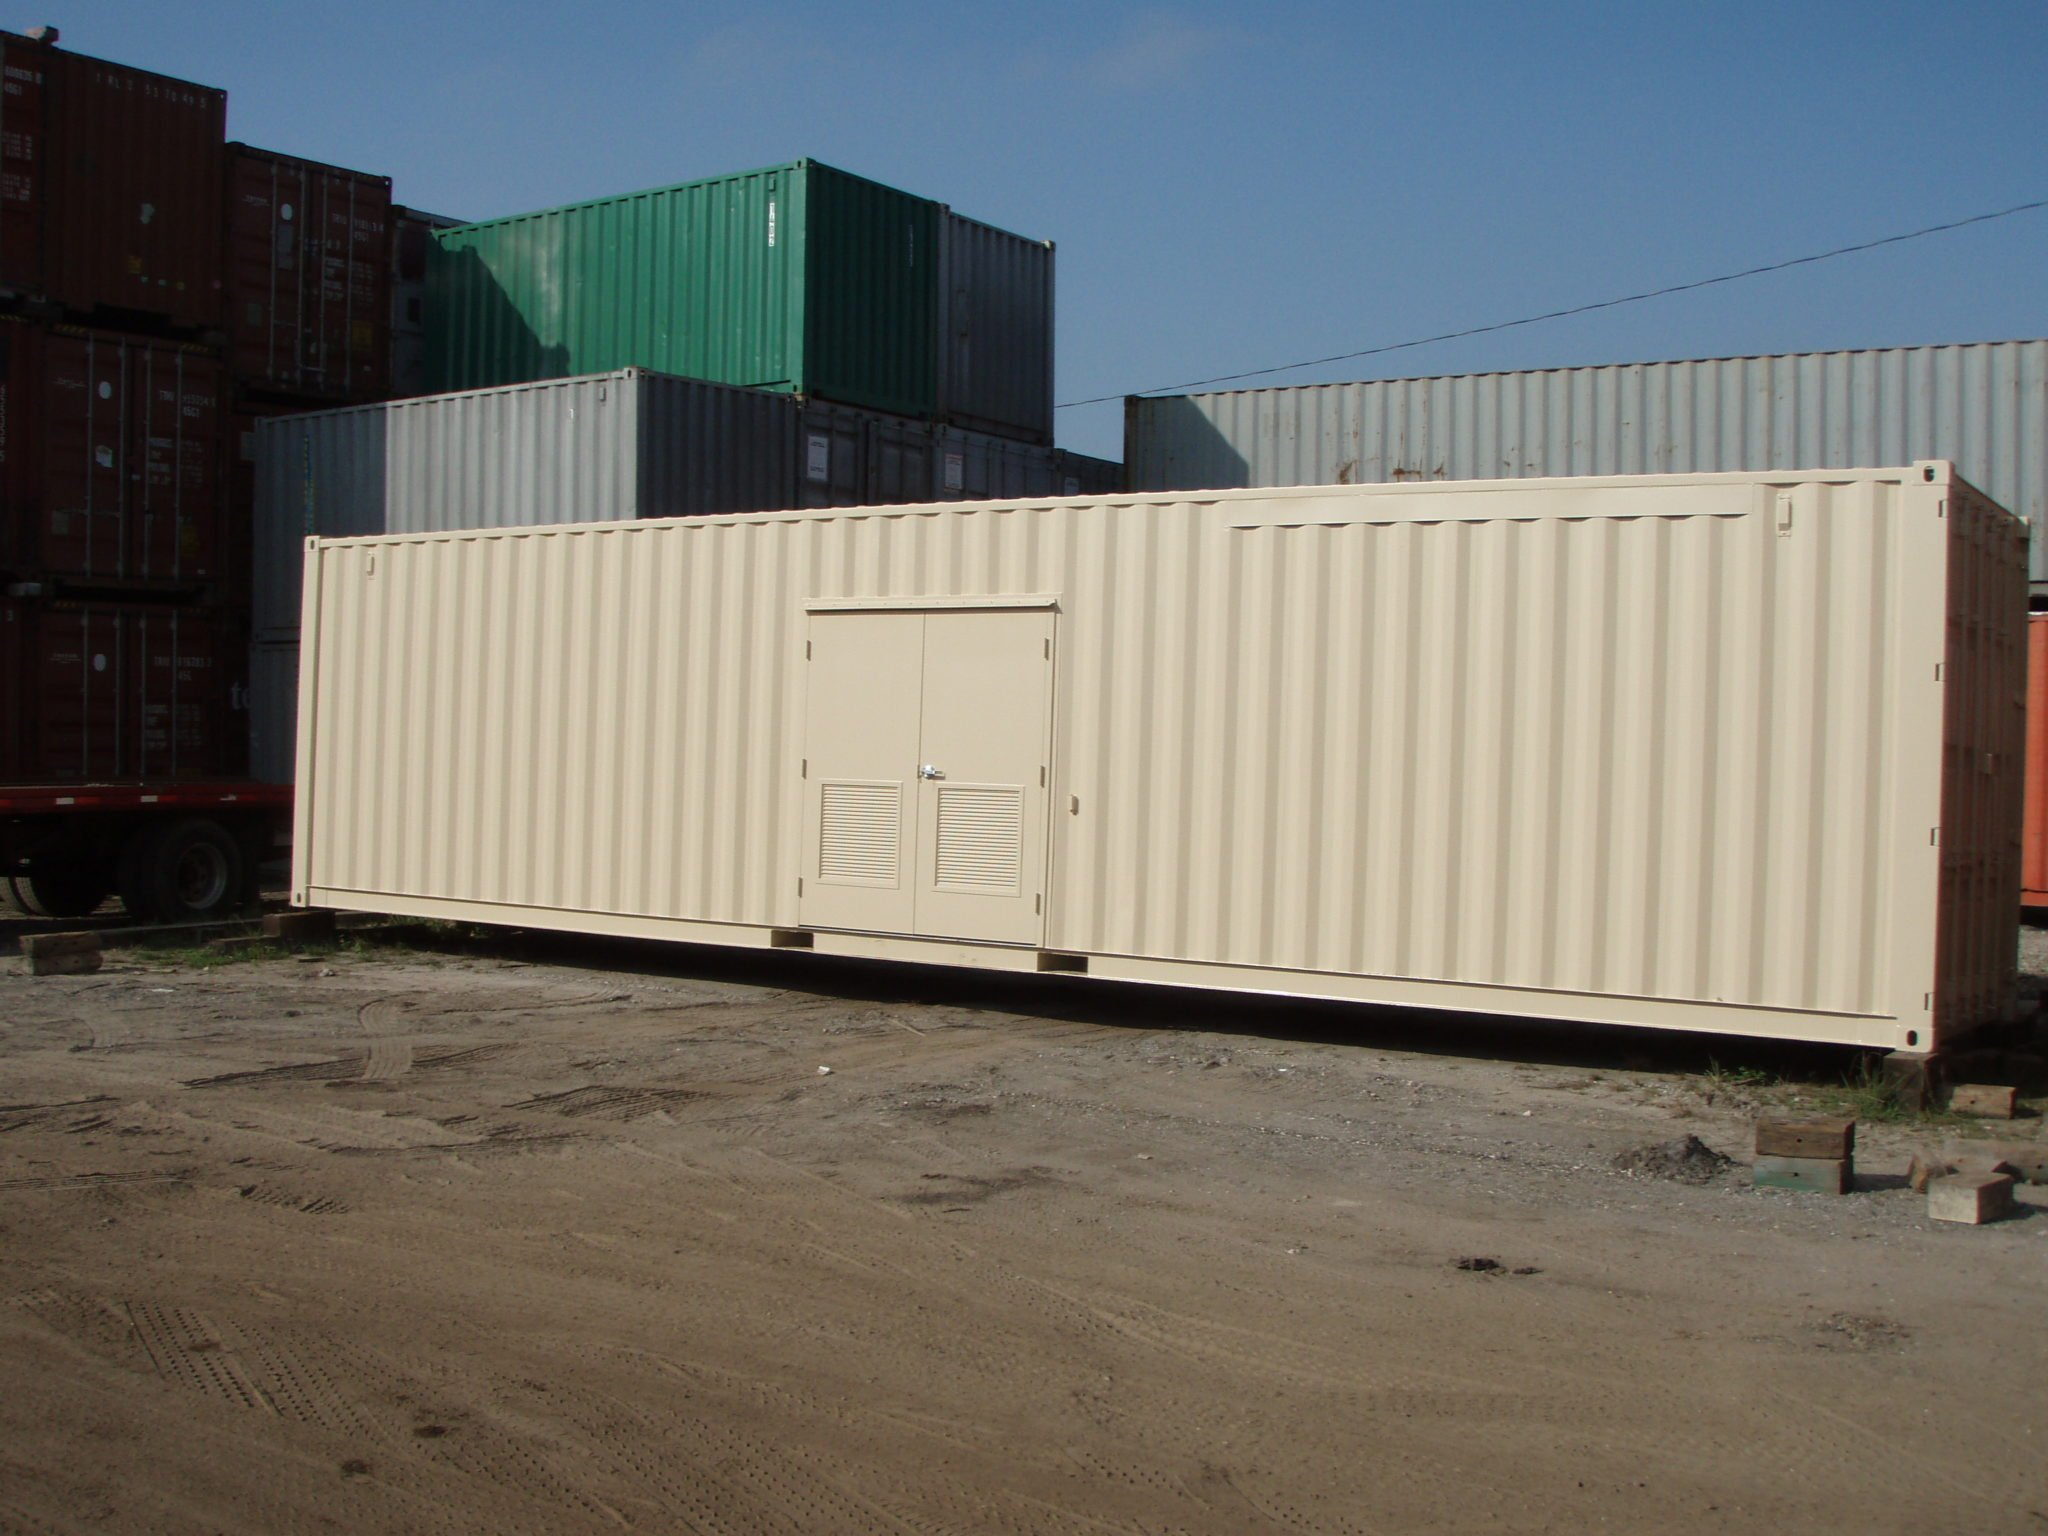 A American Container's double steel man door with lateral vent on side